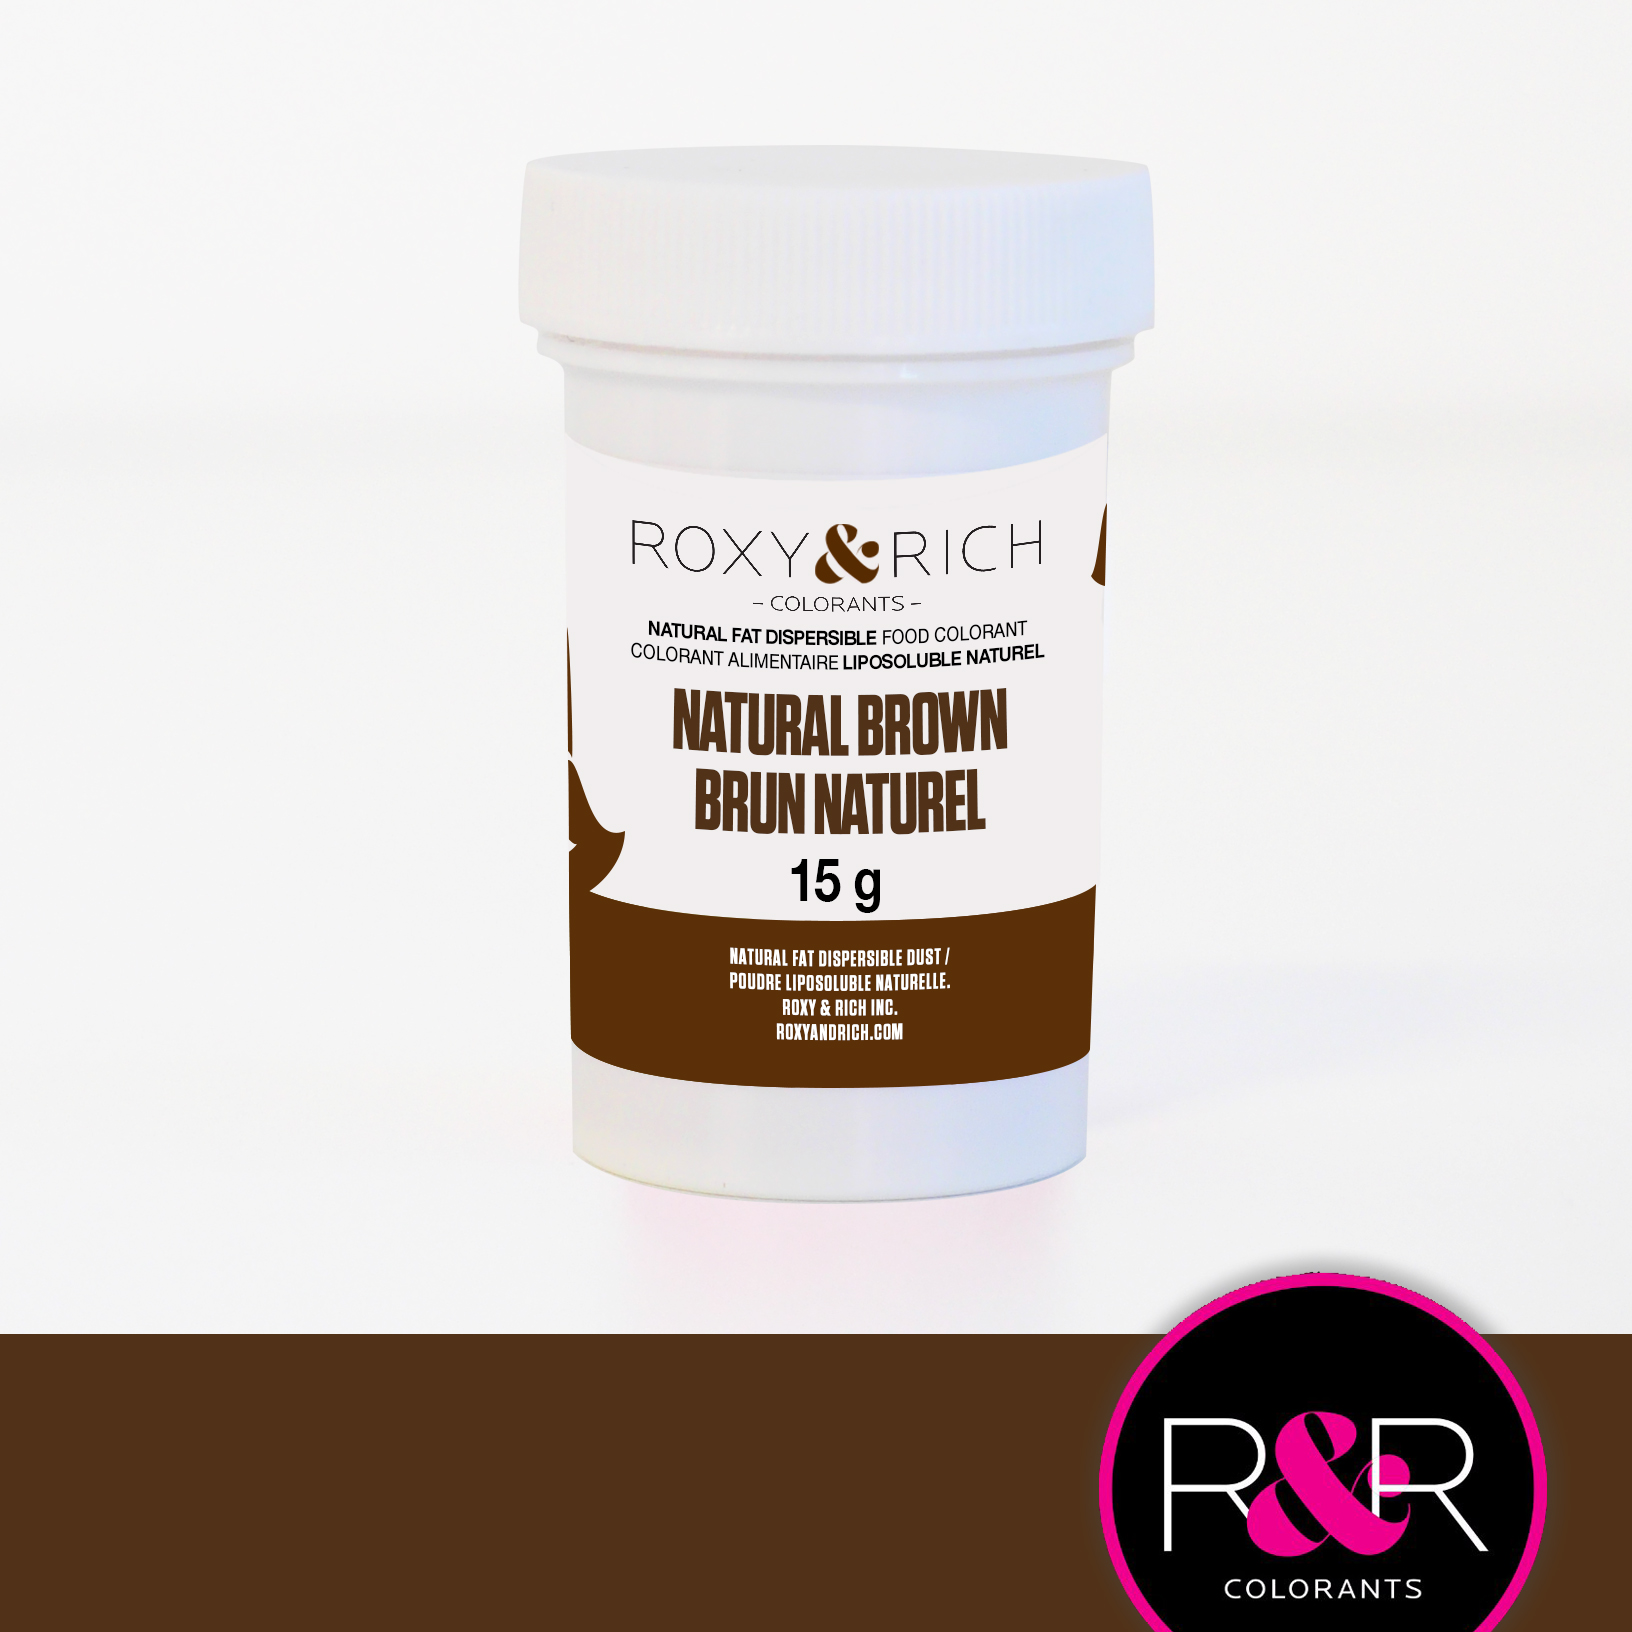 BROWN Fat Dispersible Natural Food Colouring 15g - ROXY & RICH  ** Best Before Date: January 2019**